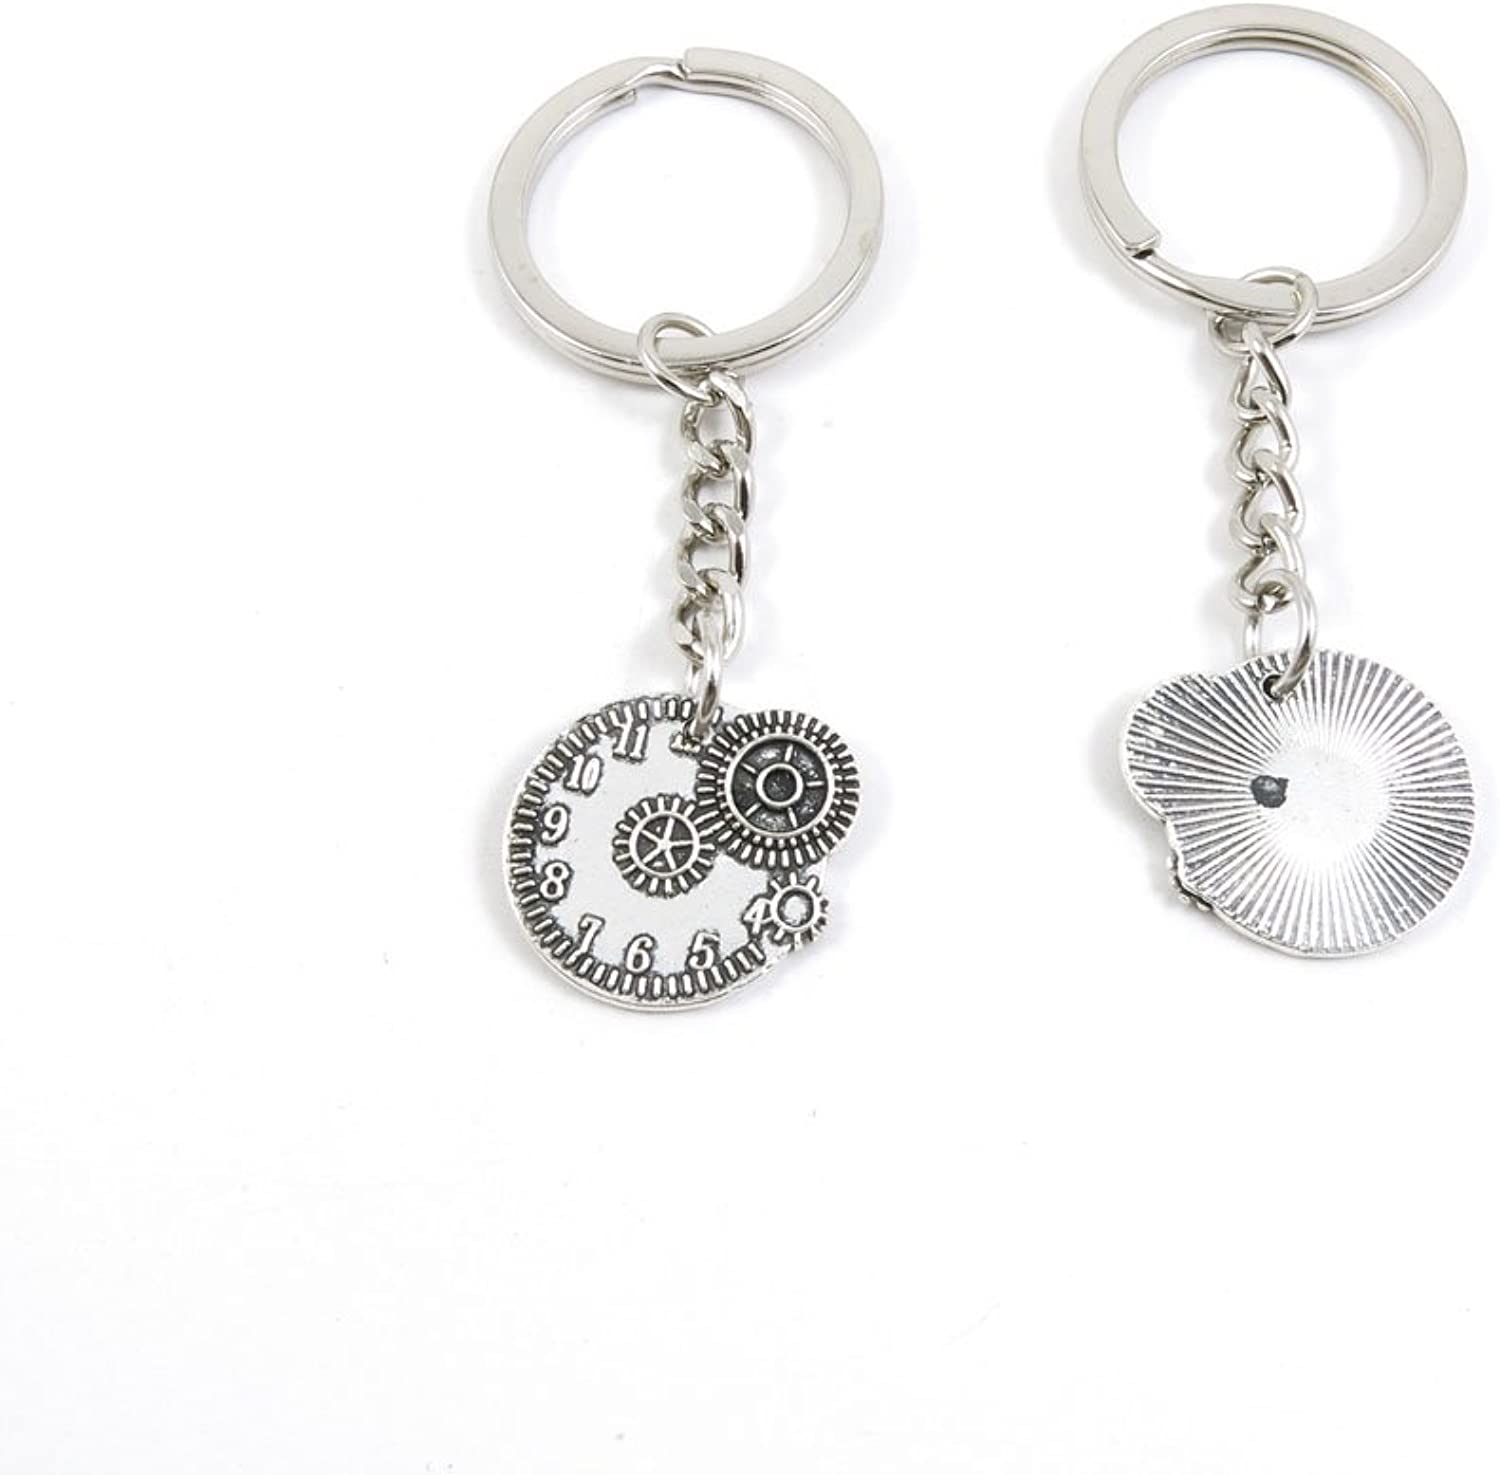 170 Pieces Fashion Jewelry Keyring Keychain Door Car Key Tag Ring Chain Supplier Supply Wholesale Bulk Lots D3GZ7 Gear Wheel Movement